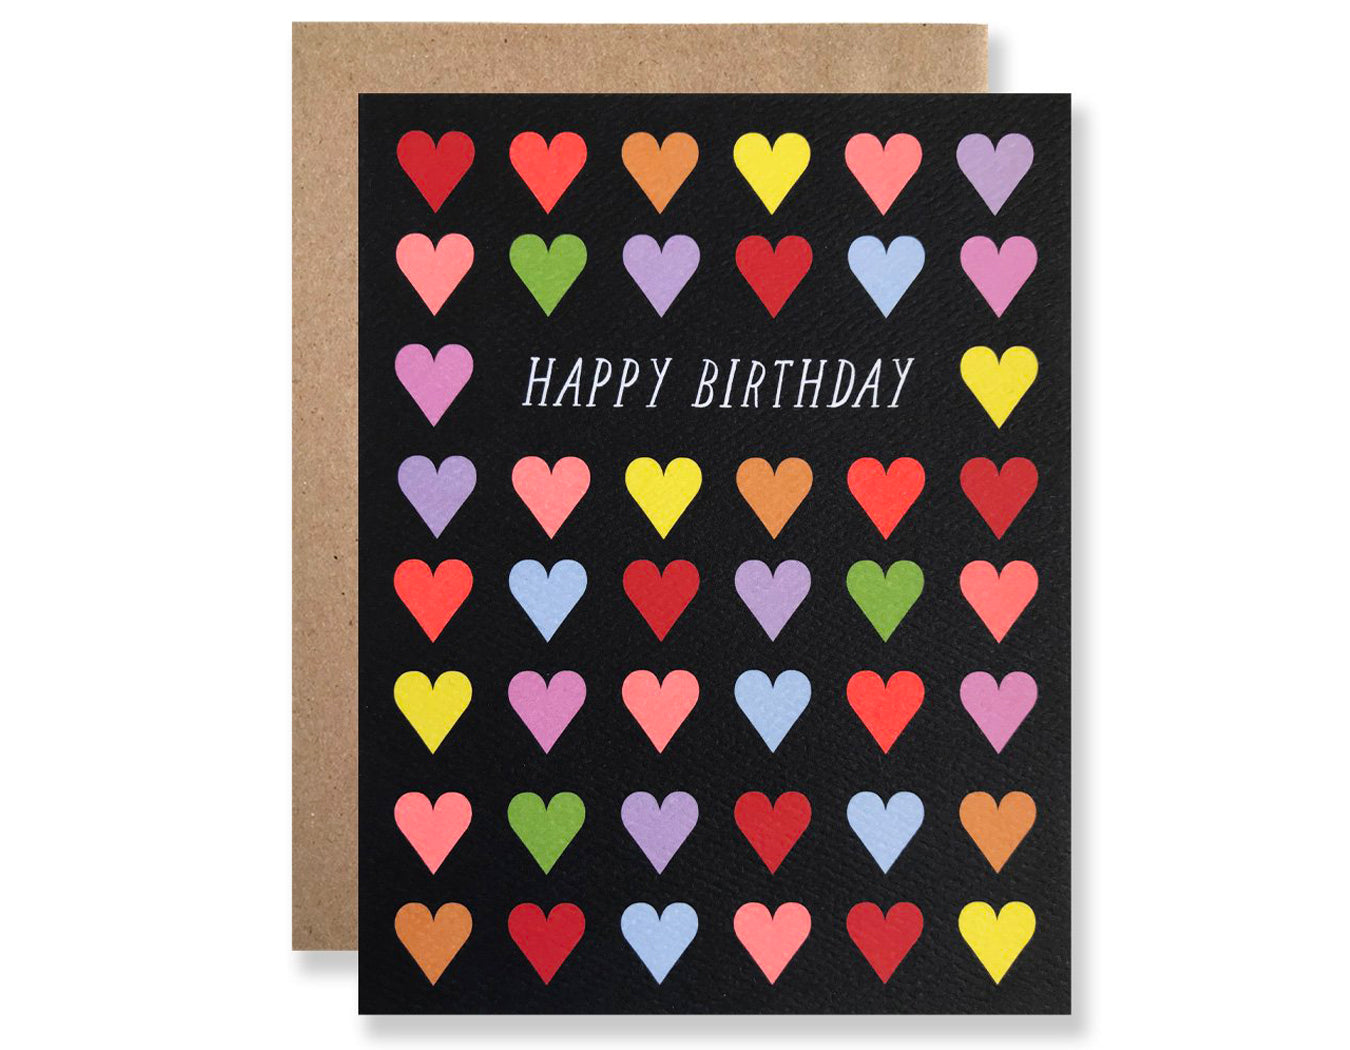 black background colorful rows of hearts text reads happy birthday